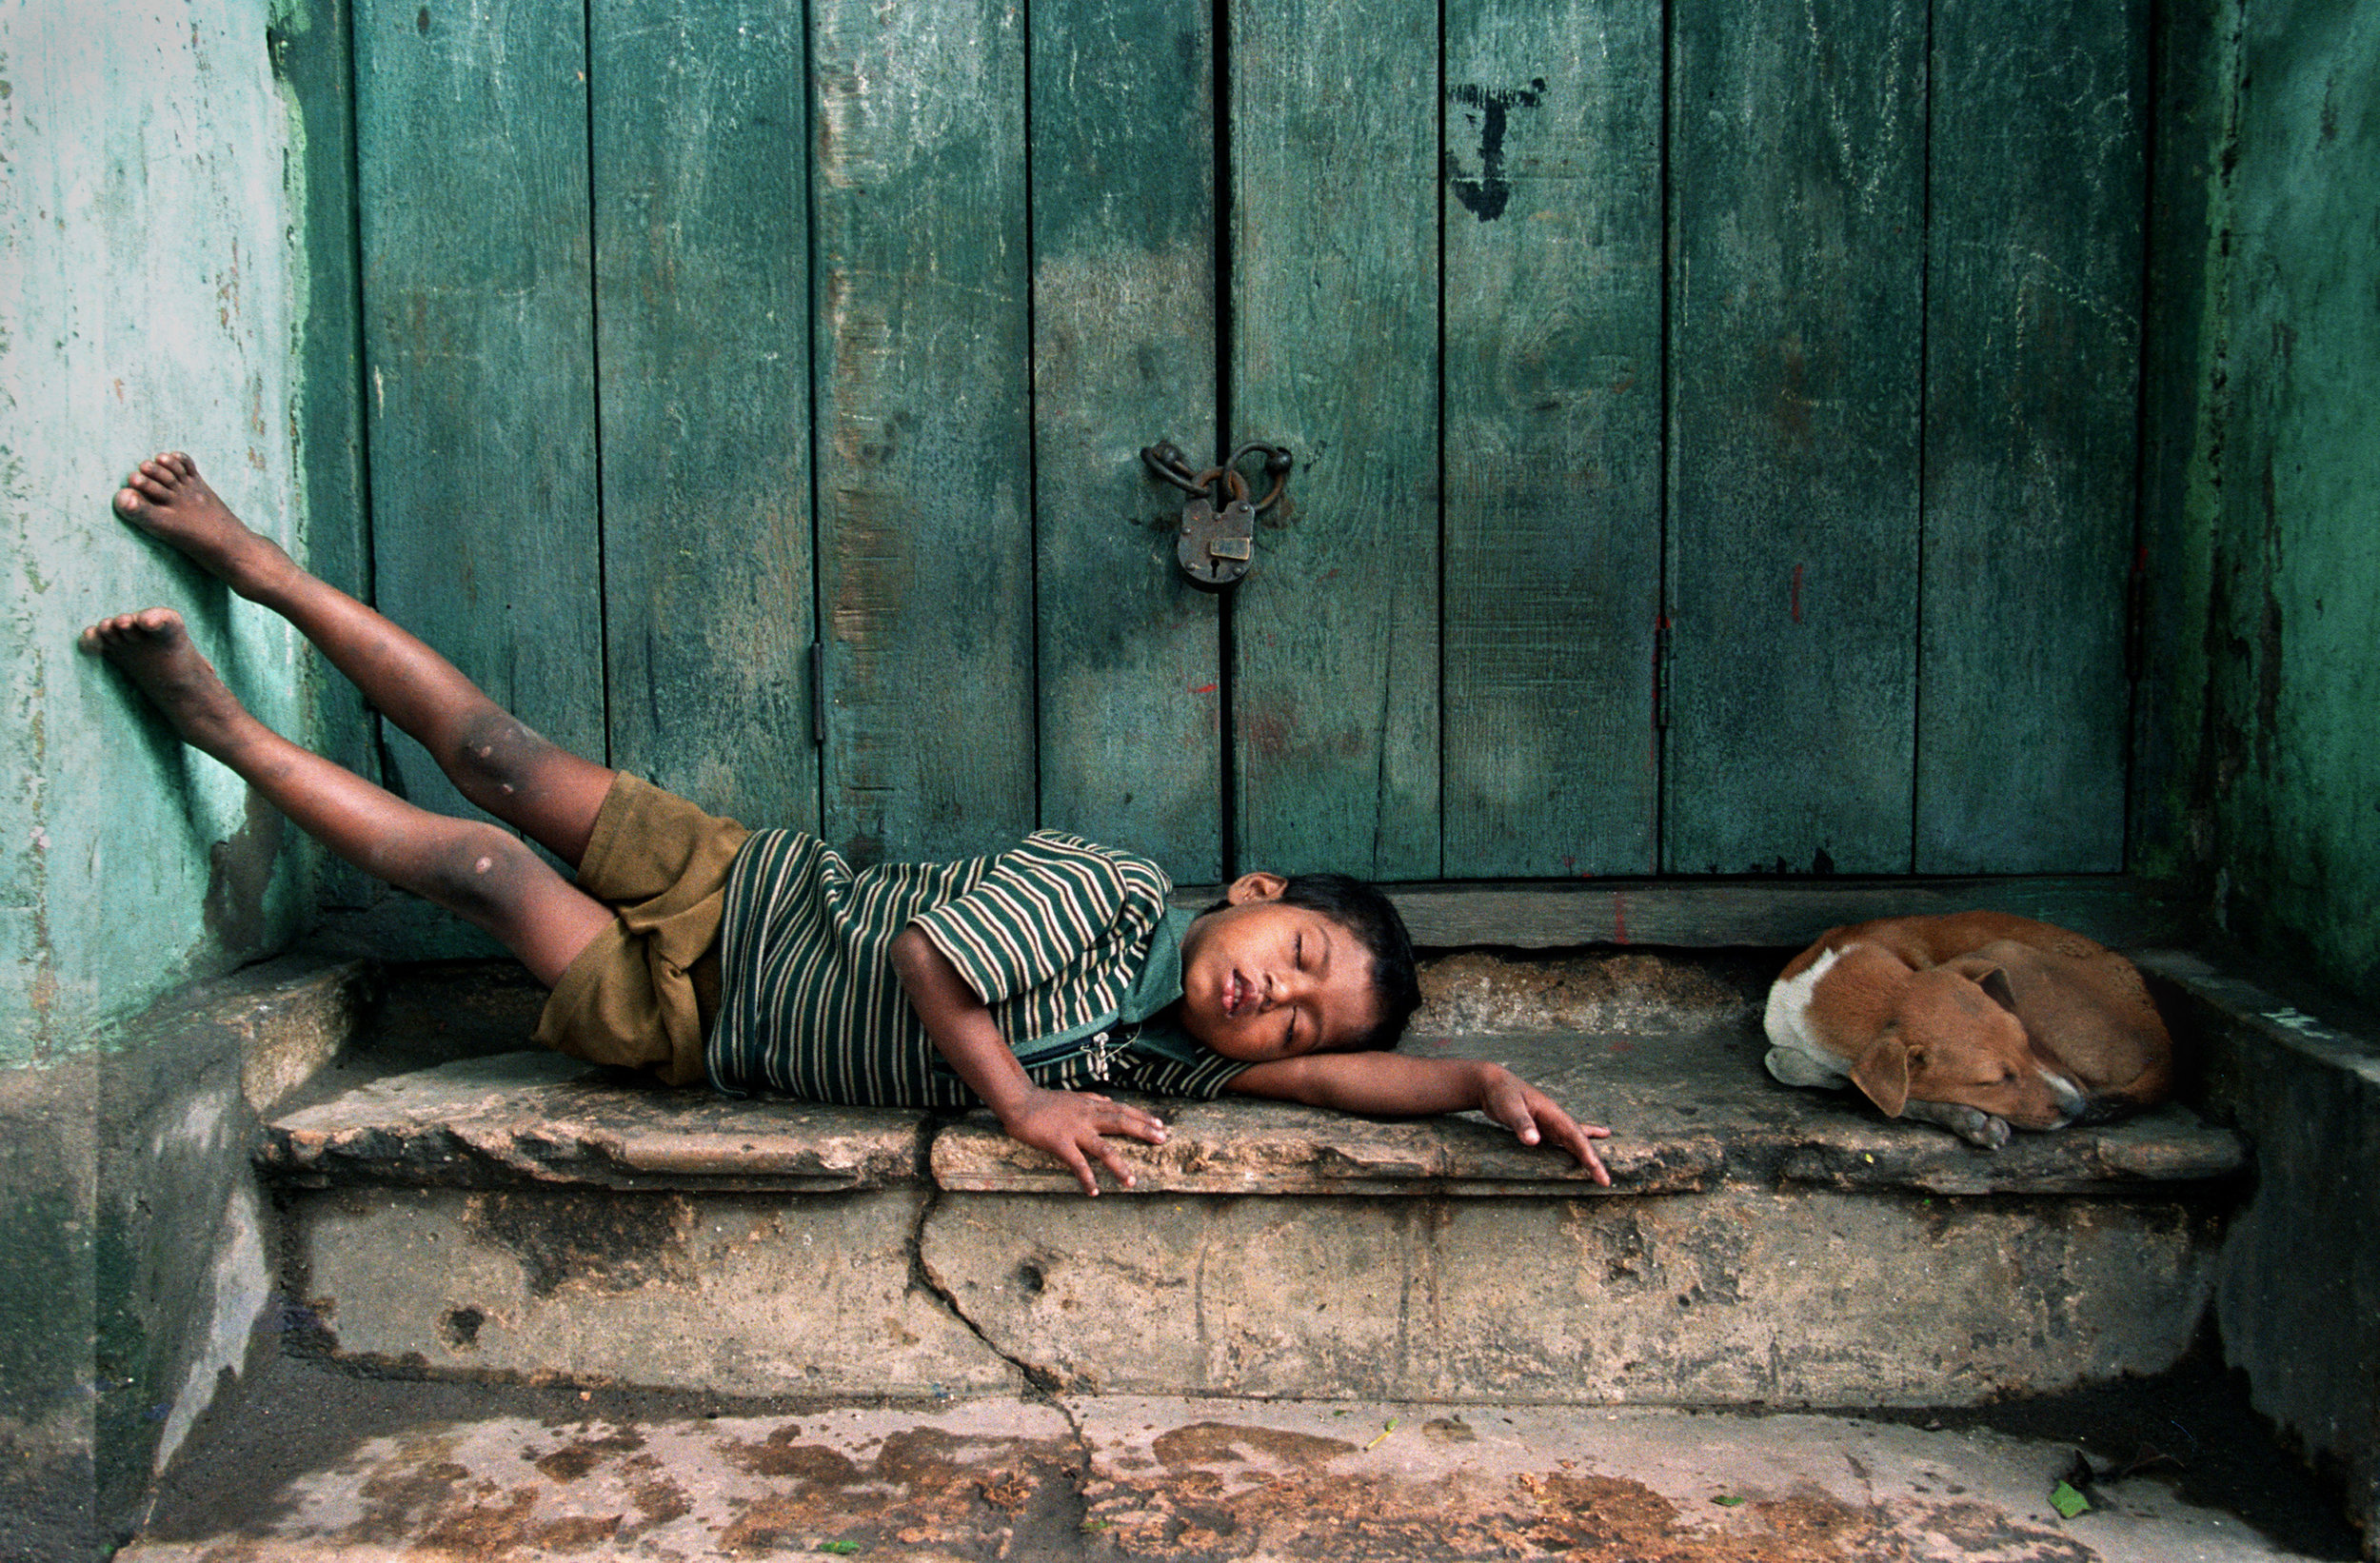 Sudipto Das. Siesta. Winner of Street Photography award, 2009. Courtesy: TCA Abu Dhabi